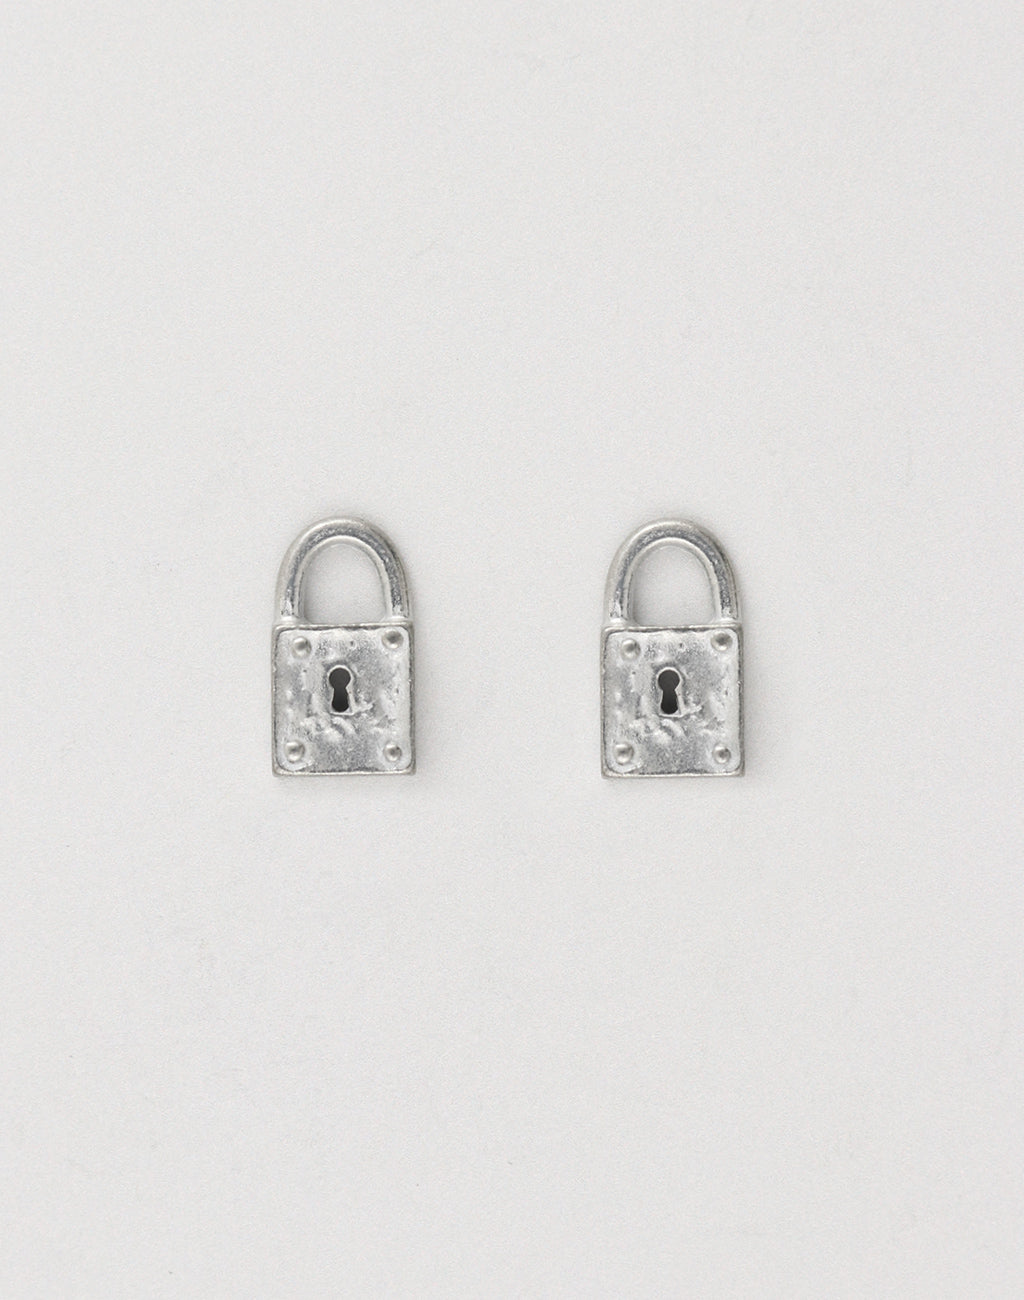 Journal Lock, 17x9mm, (2pcs)